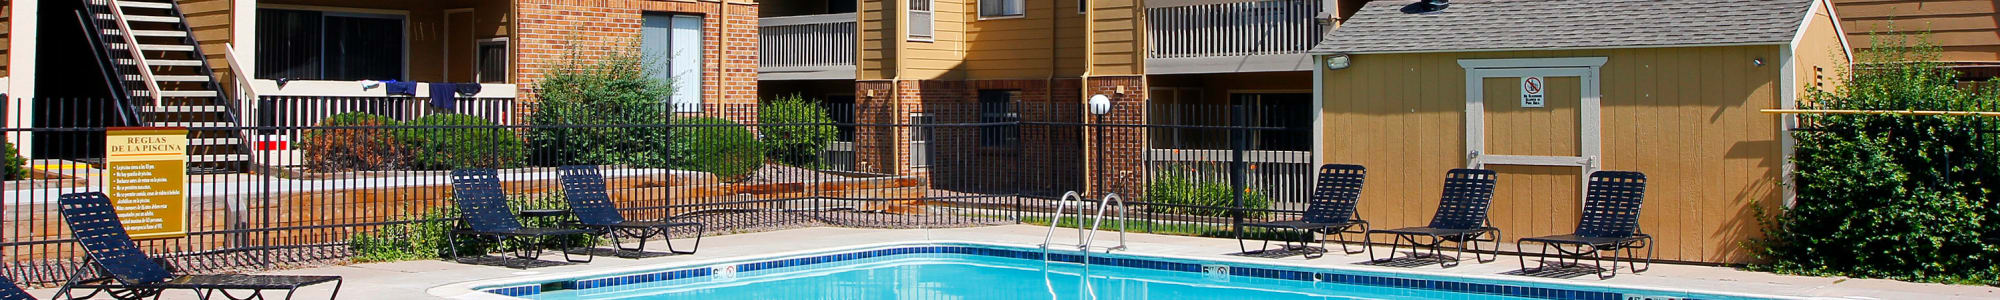 Learn more about our apartment homes for rent at The Preserve at City Center in Aurora